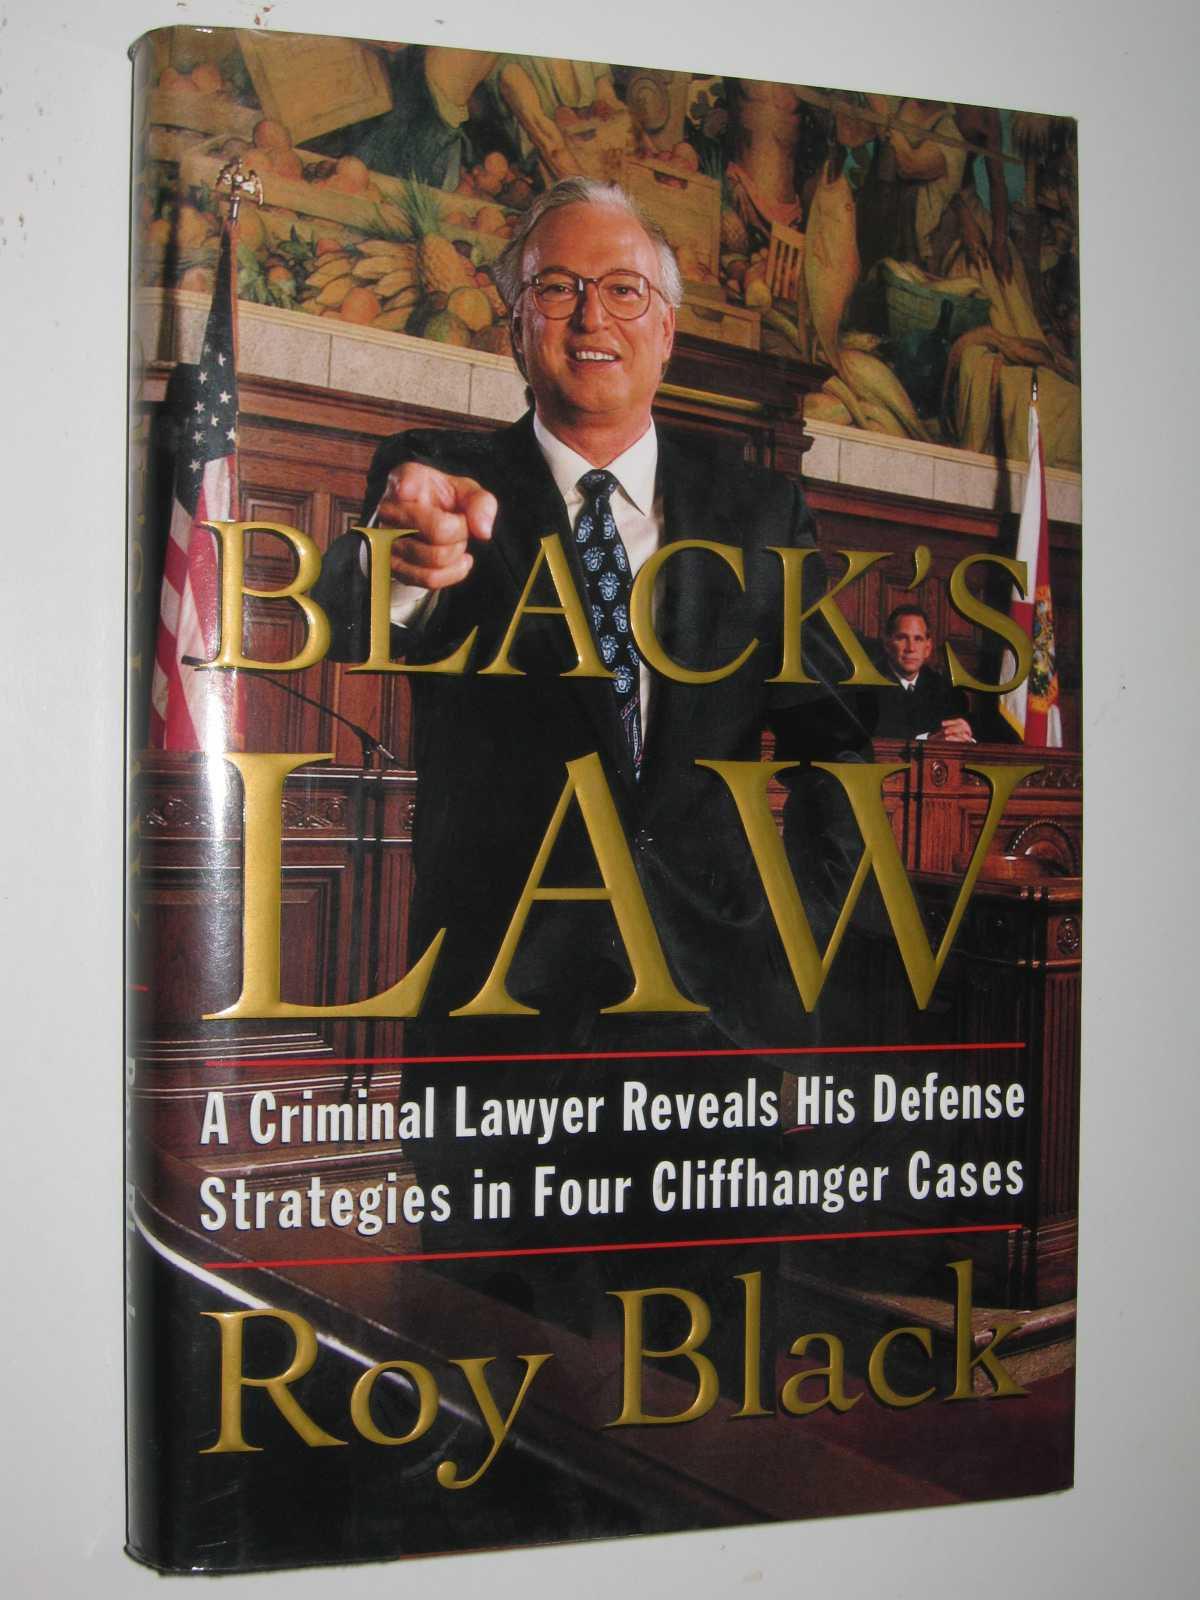 Black Law : A Criminal Lawyer Reveals His Defense Strategies in Four Cliffhanger Cases, Black, Roy